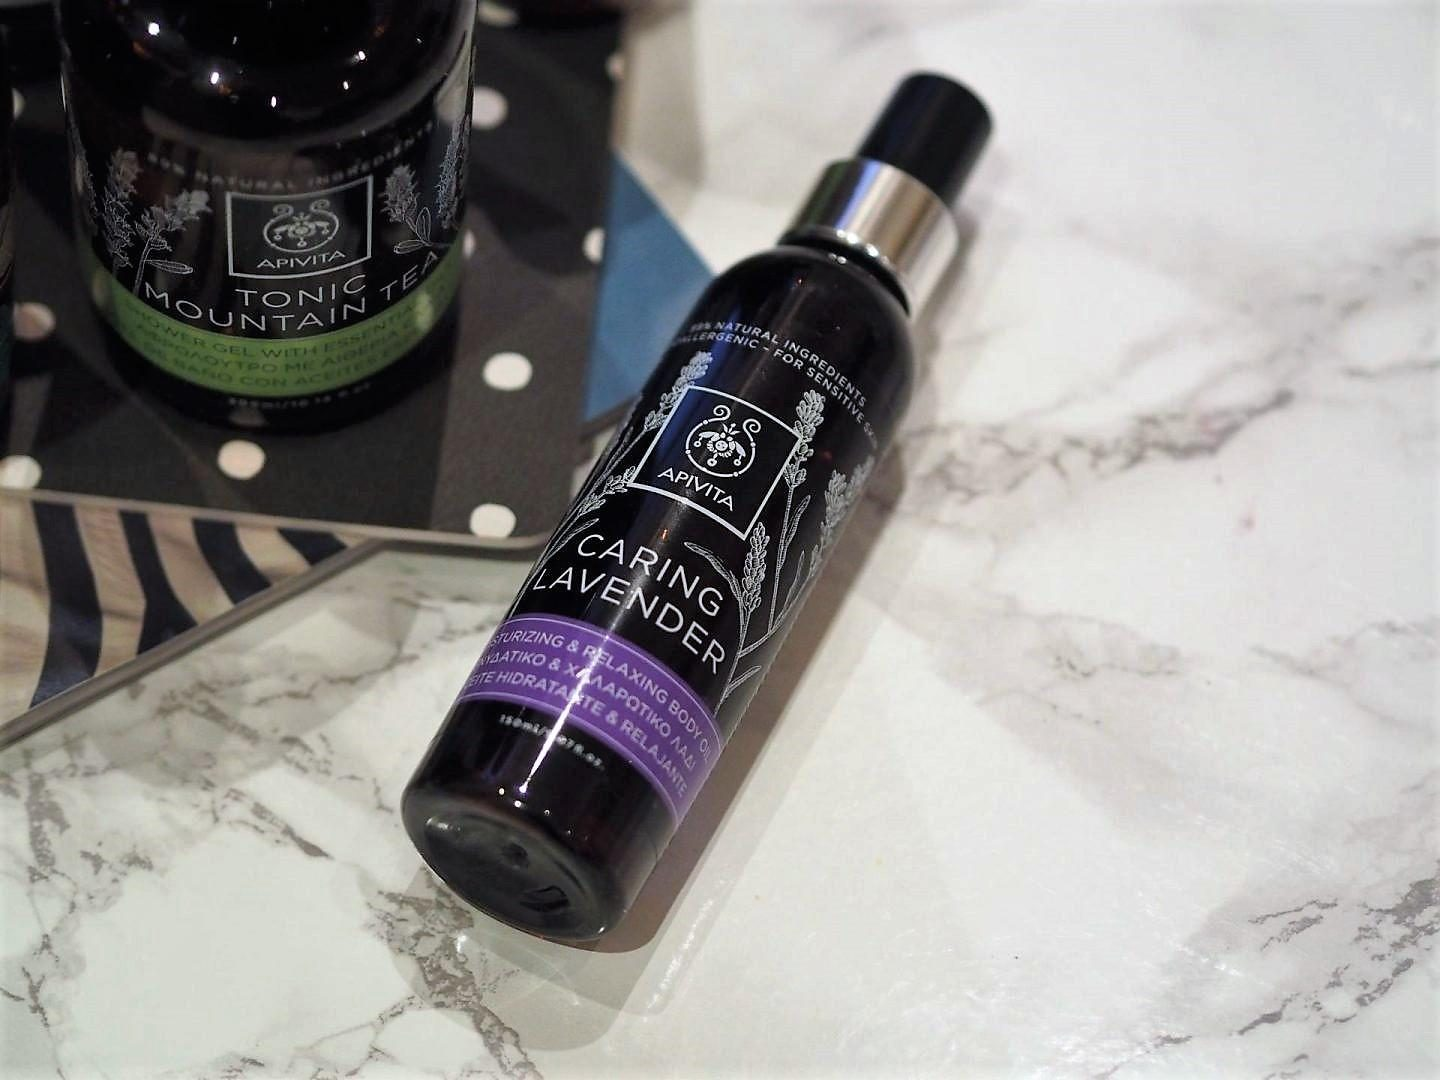 Apivita natural Greek brand with Caring Lavender and Green Beauty